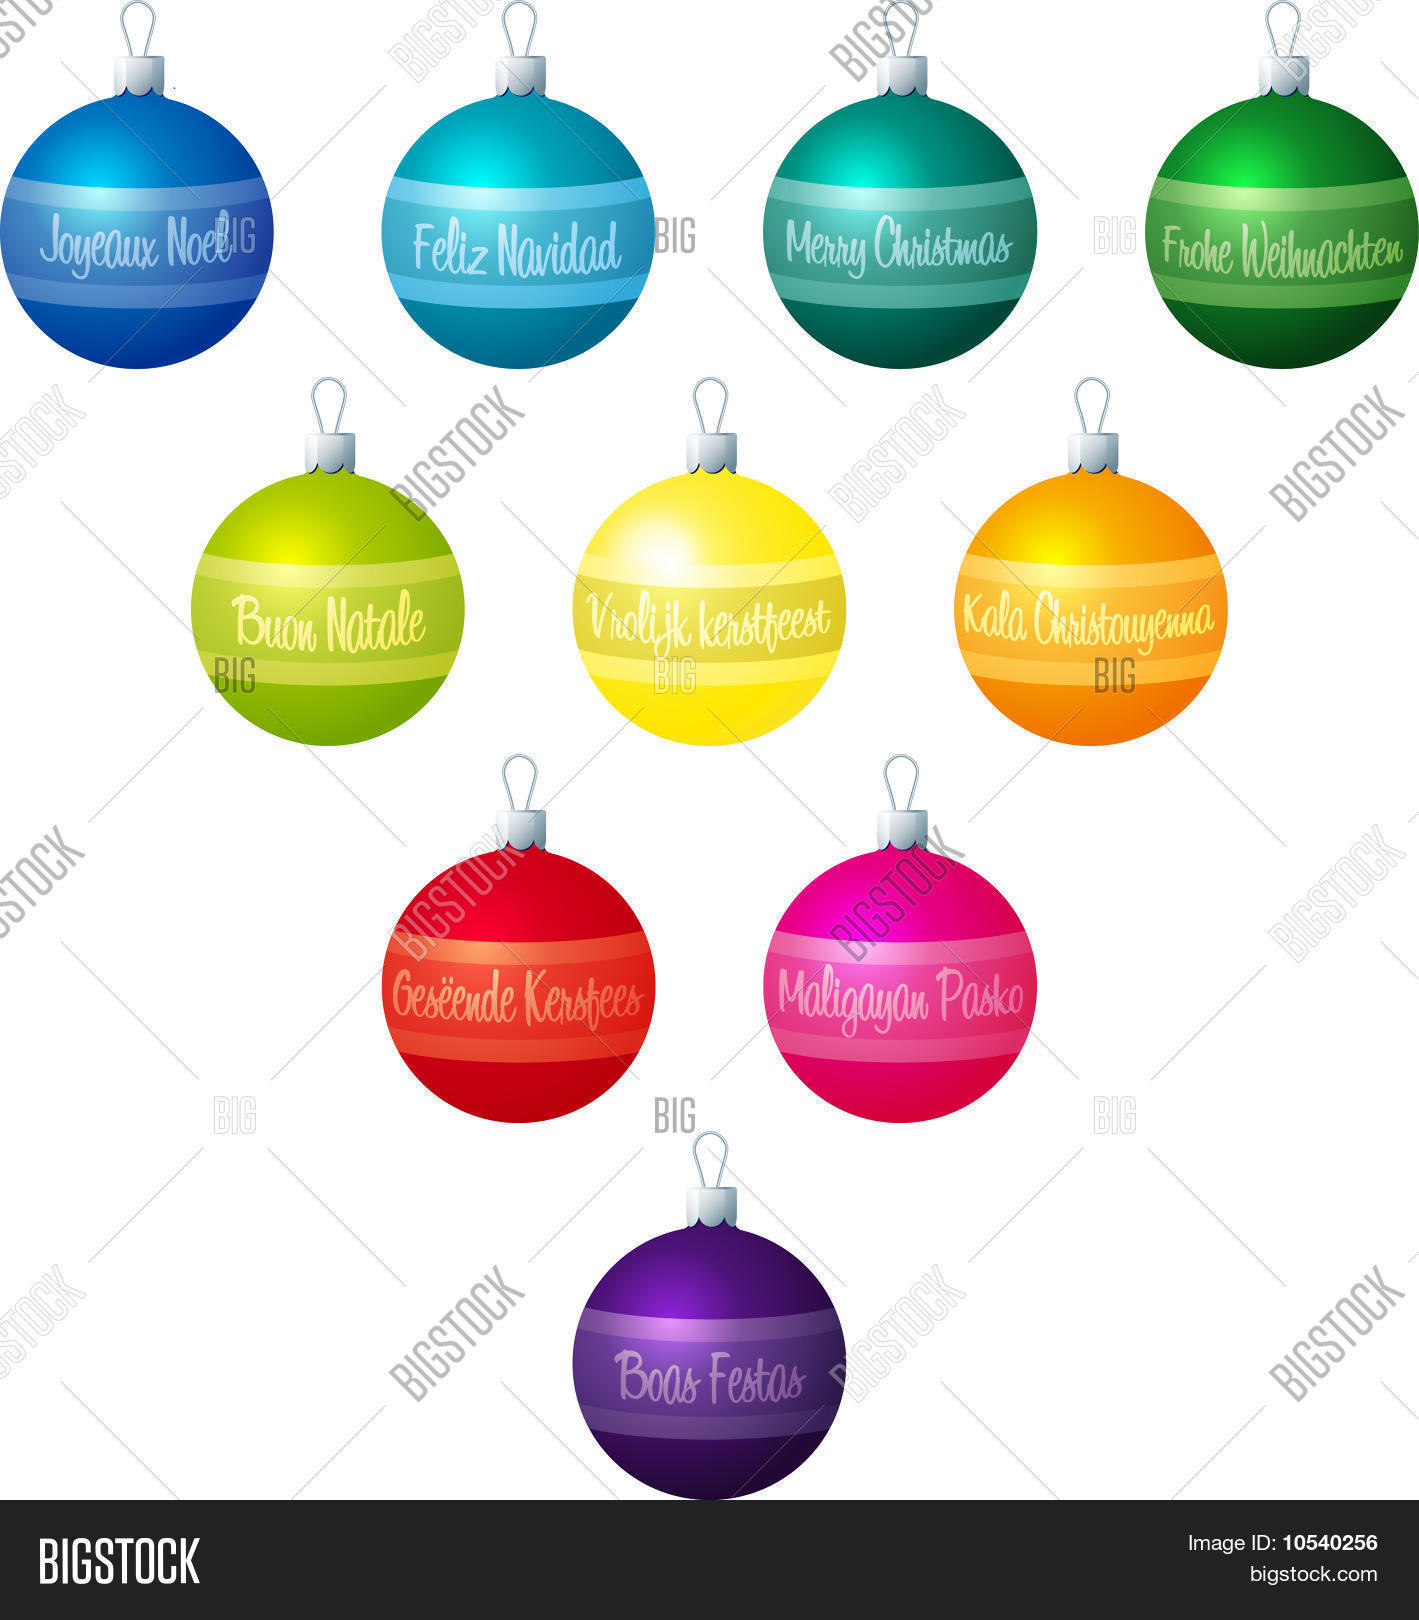 Frohe Weihnachten Tagalog Merry Christmas Vector Photo Free Trial Bigstock